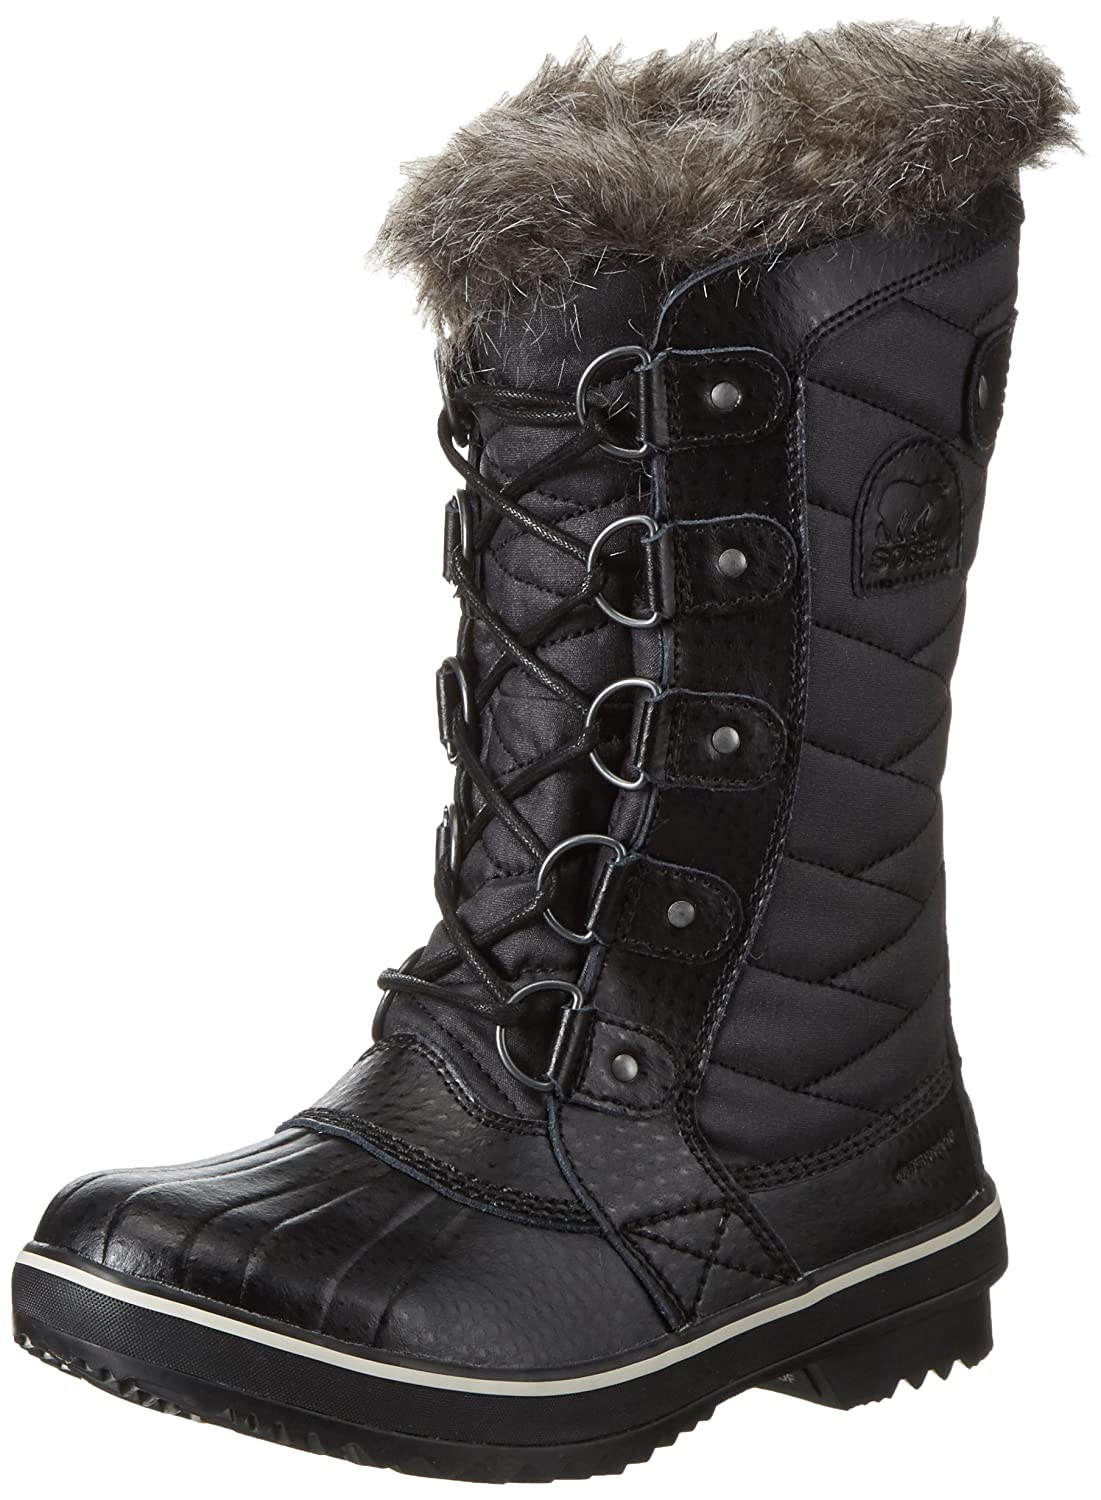 Sorel Tofino II, Femme Bottes de 12914 Neige Femme B01N5OGBPO Black, Stone 663a2cc - therethere.space